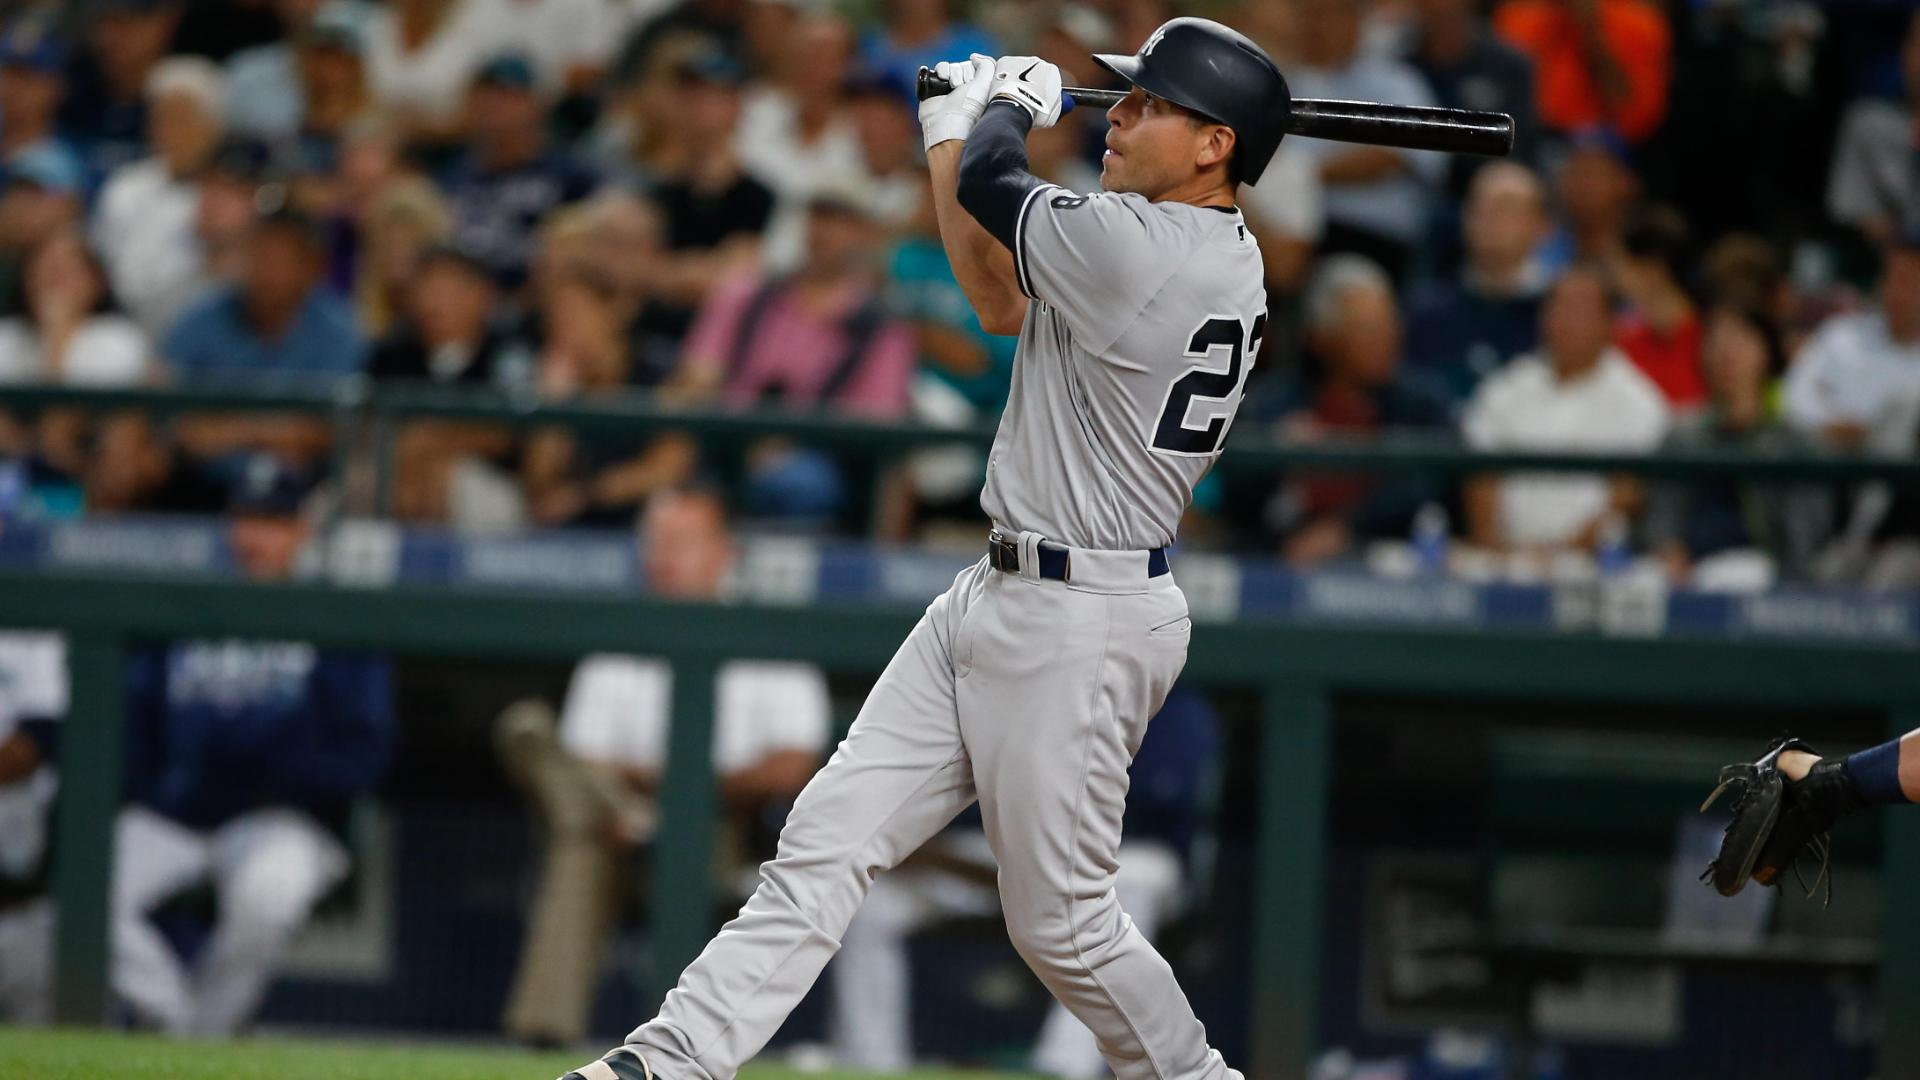 Ellsbury's two-run shot gives Yanks lead